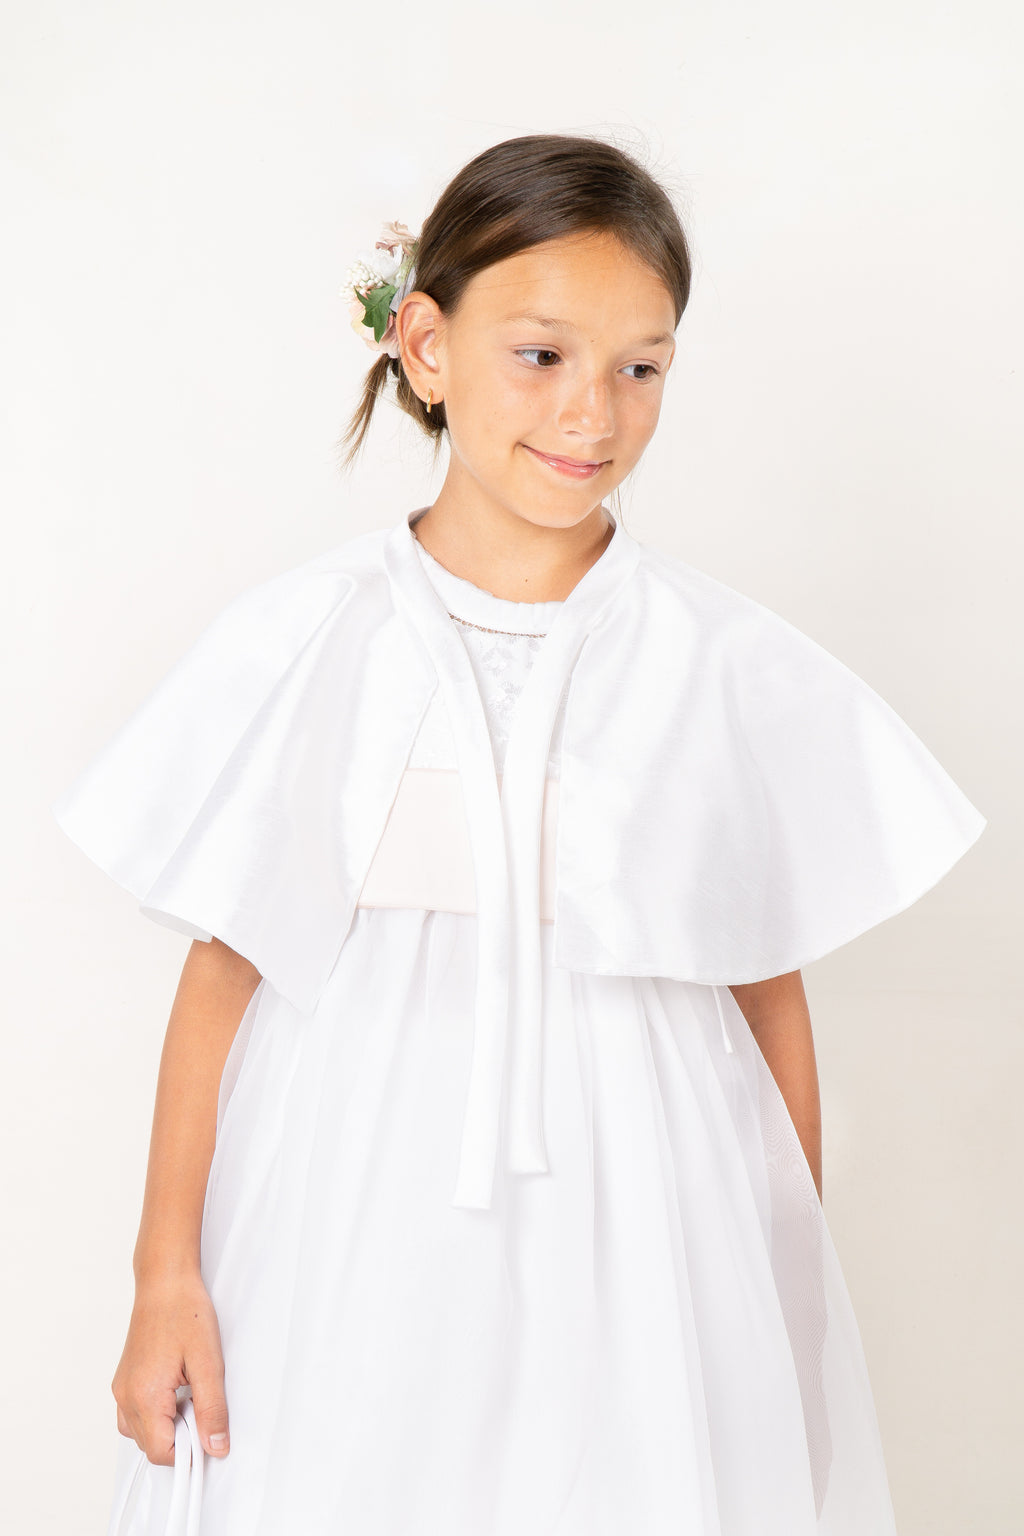 Communion Capes in Chicago, Communion Capes in London, Communion Capes in UK,  Communion Capes in Illinois,  Communion Capes in Ireland,  Communion Capes in Belfast,  Communion Capes in Dublin,  Communion Capes in Germany,  Communion Capes in Miami,  Communion Capes in Canada,  Communion Capes in Toronto,  Communion Capes in Wasilla,  Communion Capes in Texas,  Communion Capes in Houston,  Communion Capes in Orlando